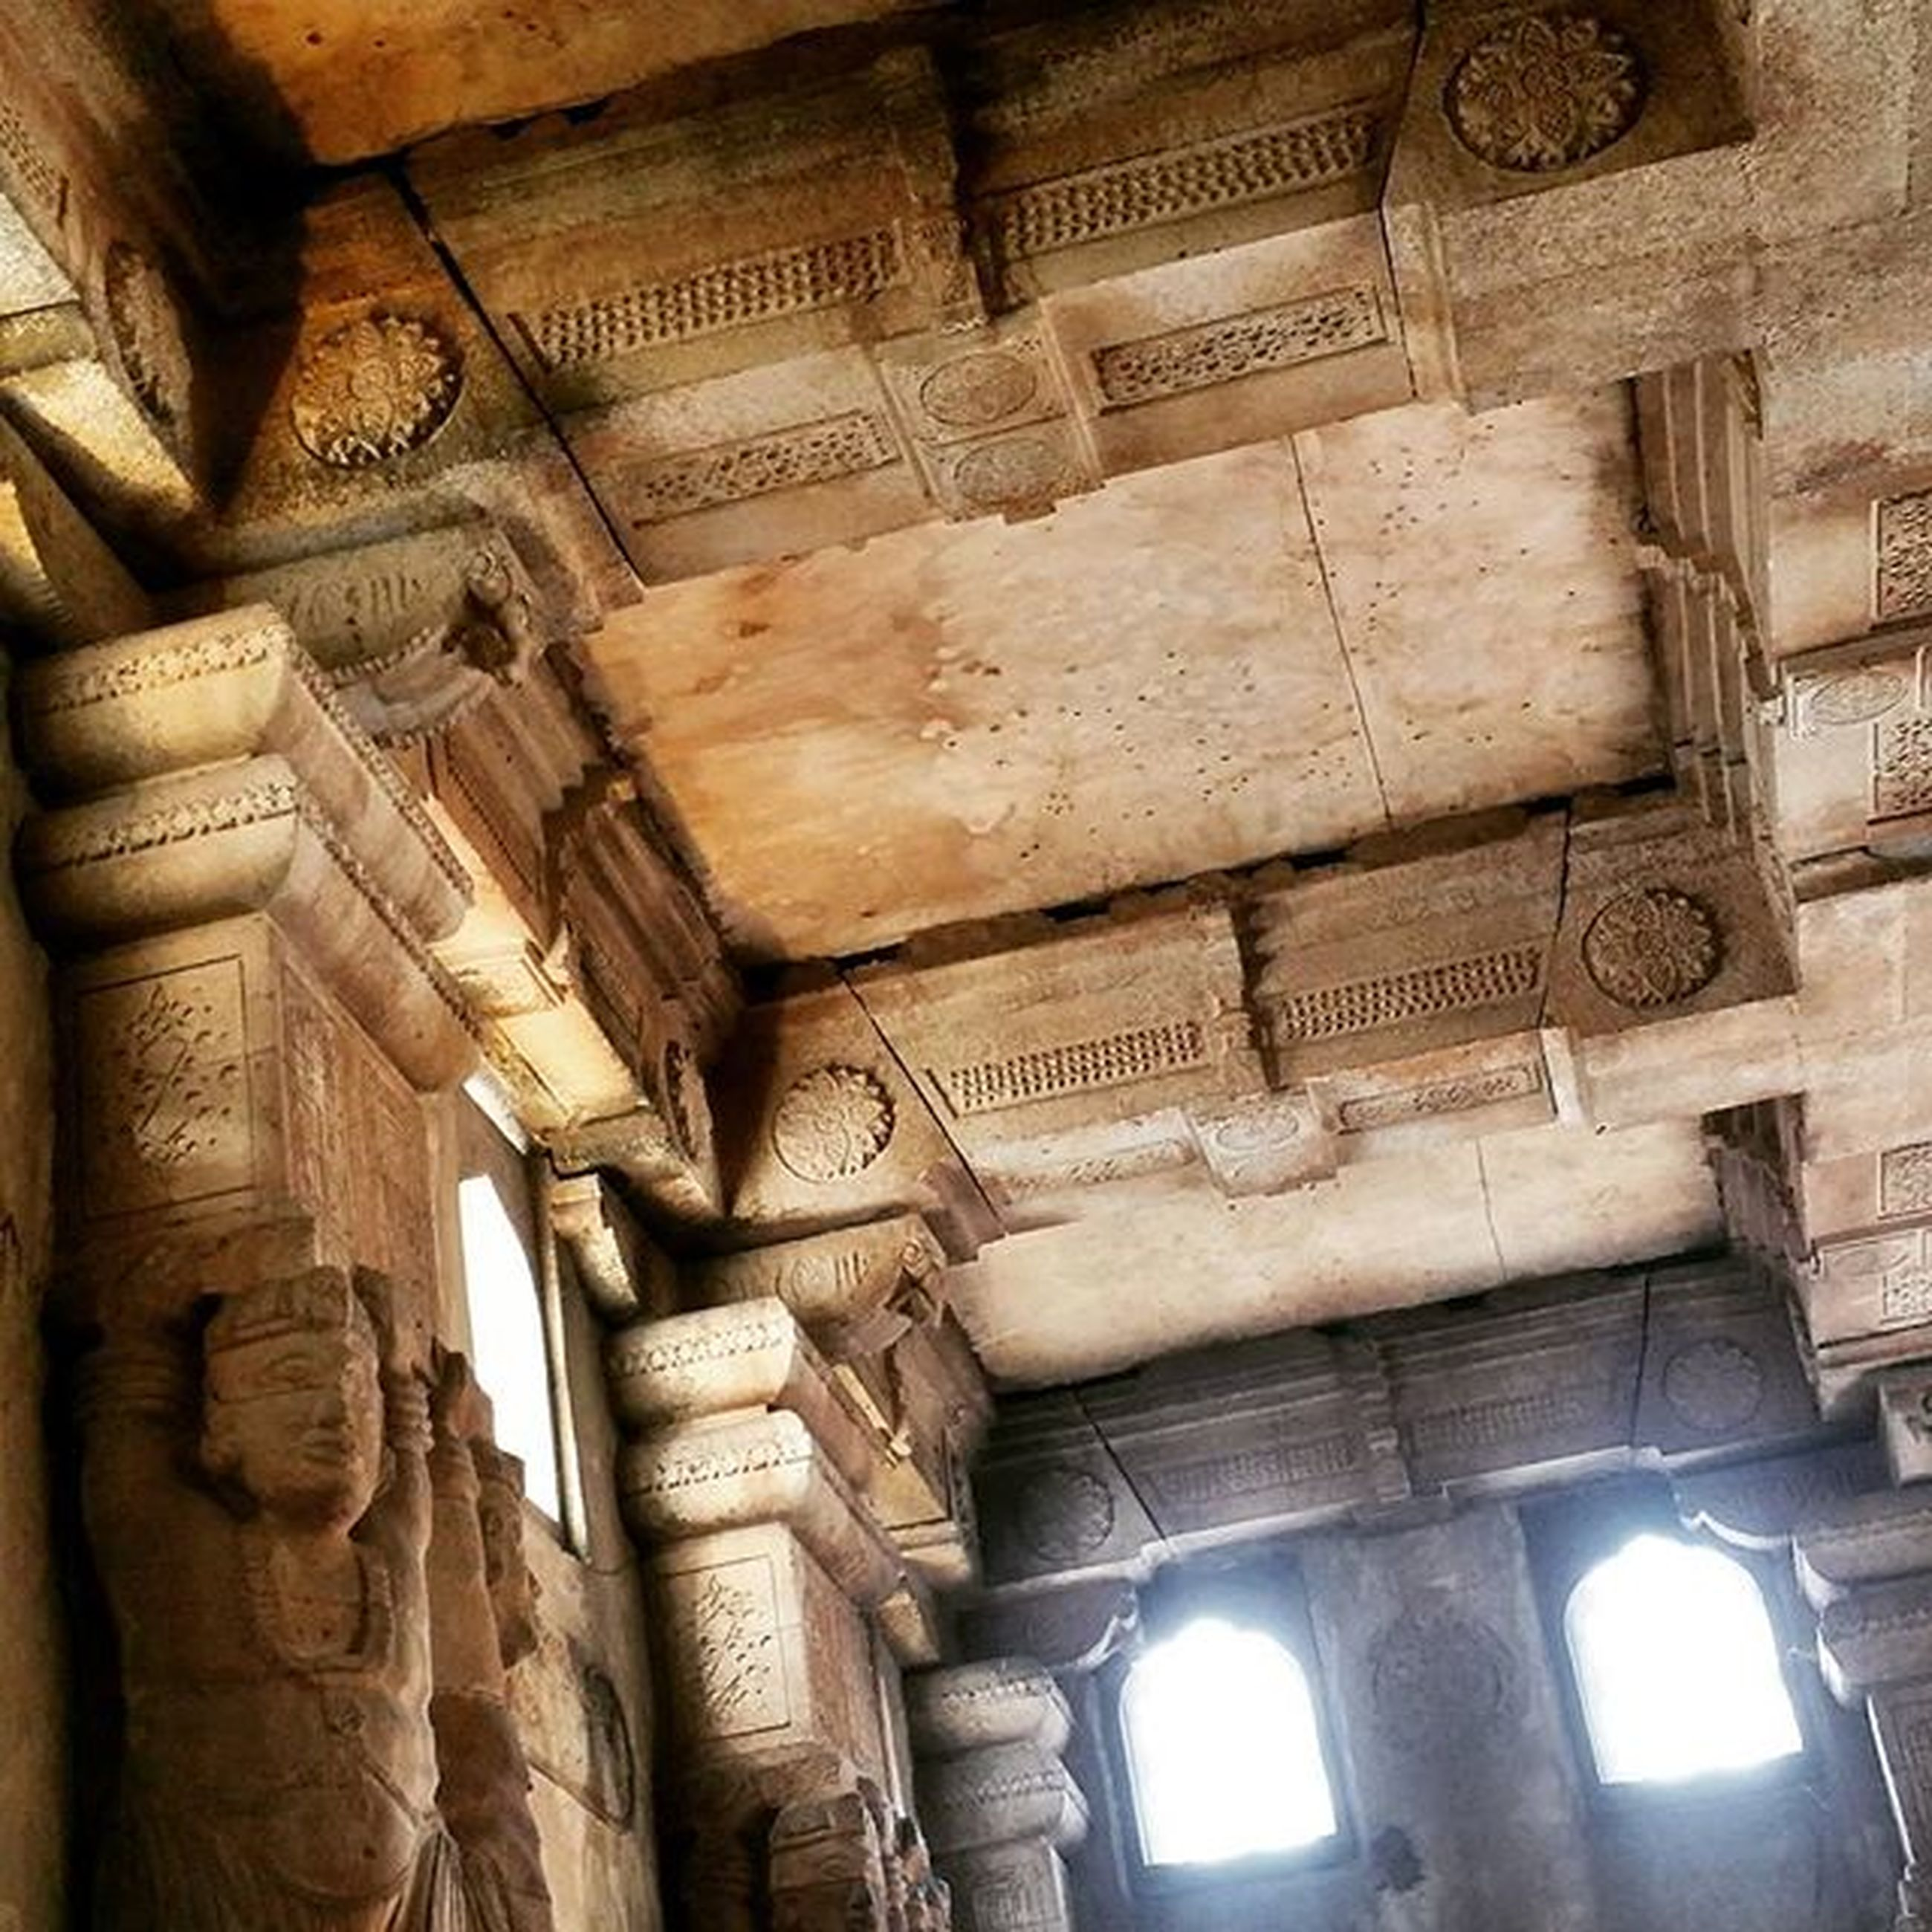 architecture, built structure, low angle view, history, statue, art and craft, art, sculpture, human representation, building exterior, carving - craft product, old, creativity, the past, architectural column, ancient, arch, famous place, column